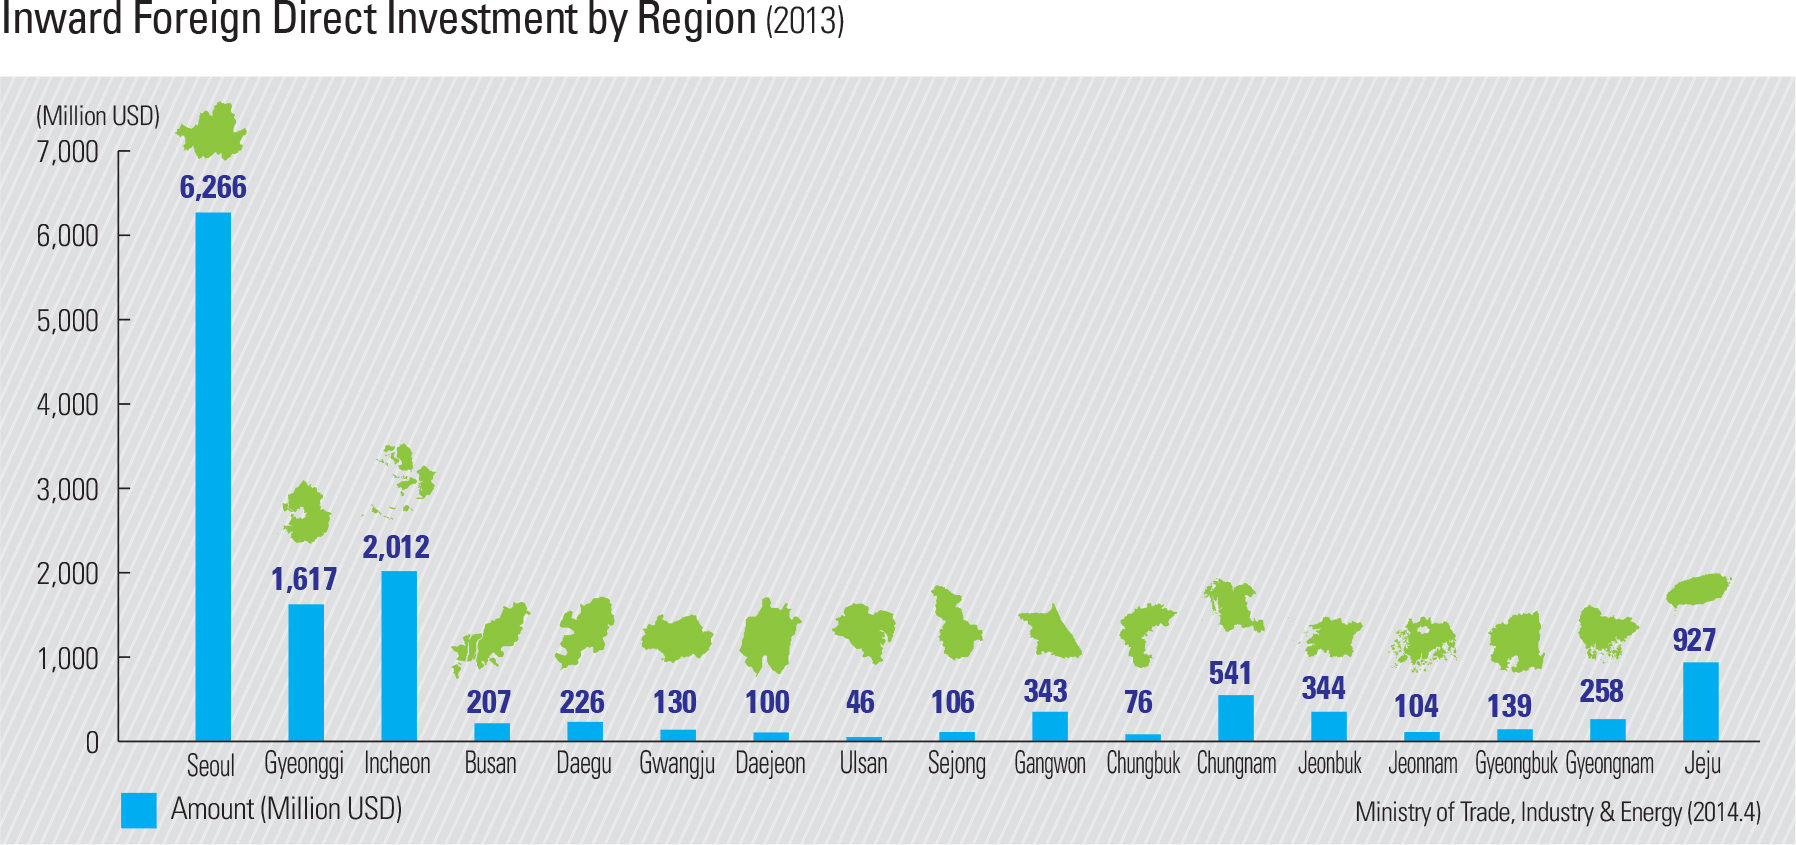 Inward Foreign Direct Investment by Region